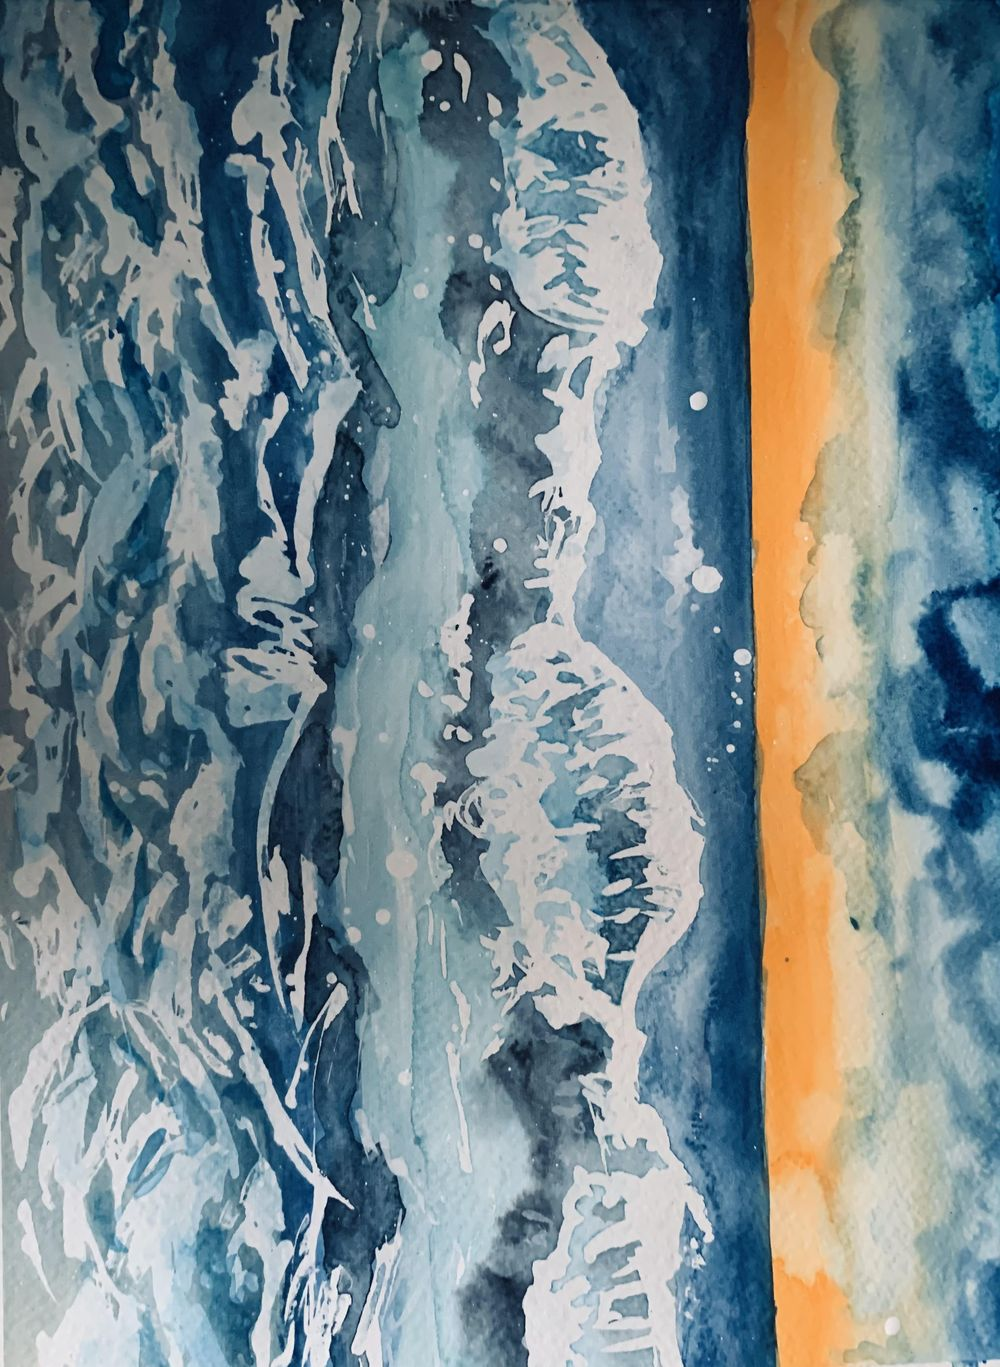 Watercolor ocean waves 2 - image 2 - student project